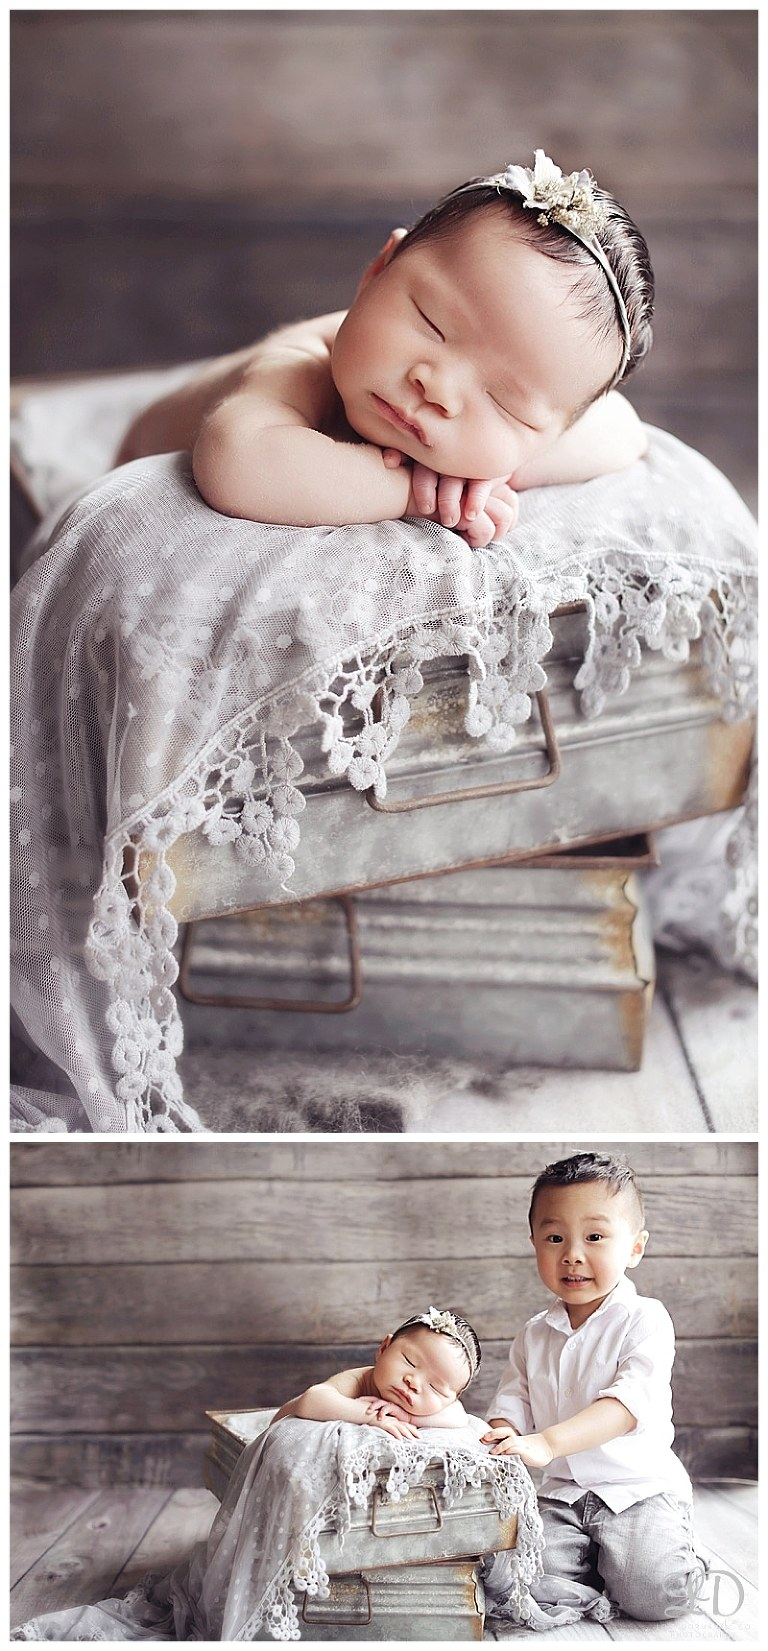 sweet maternity photoshoot-lori dorman photography-maternity boudoir-professional photographer_4830.jpg